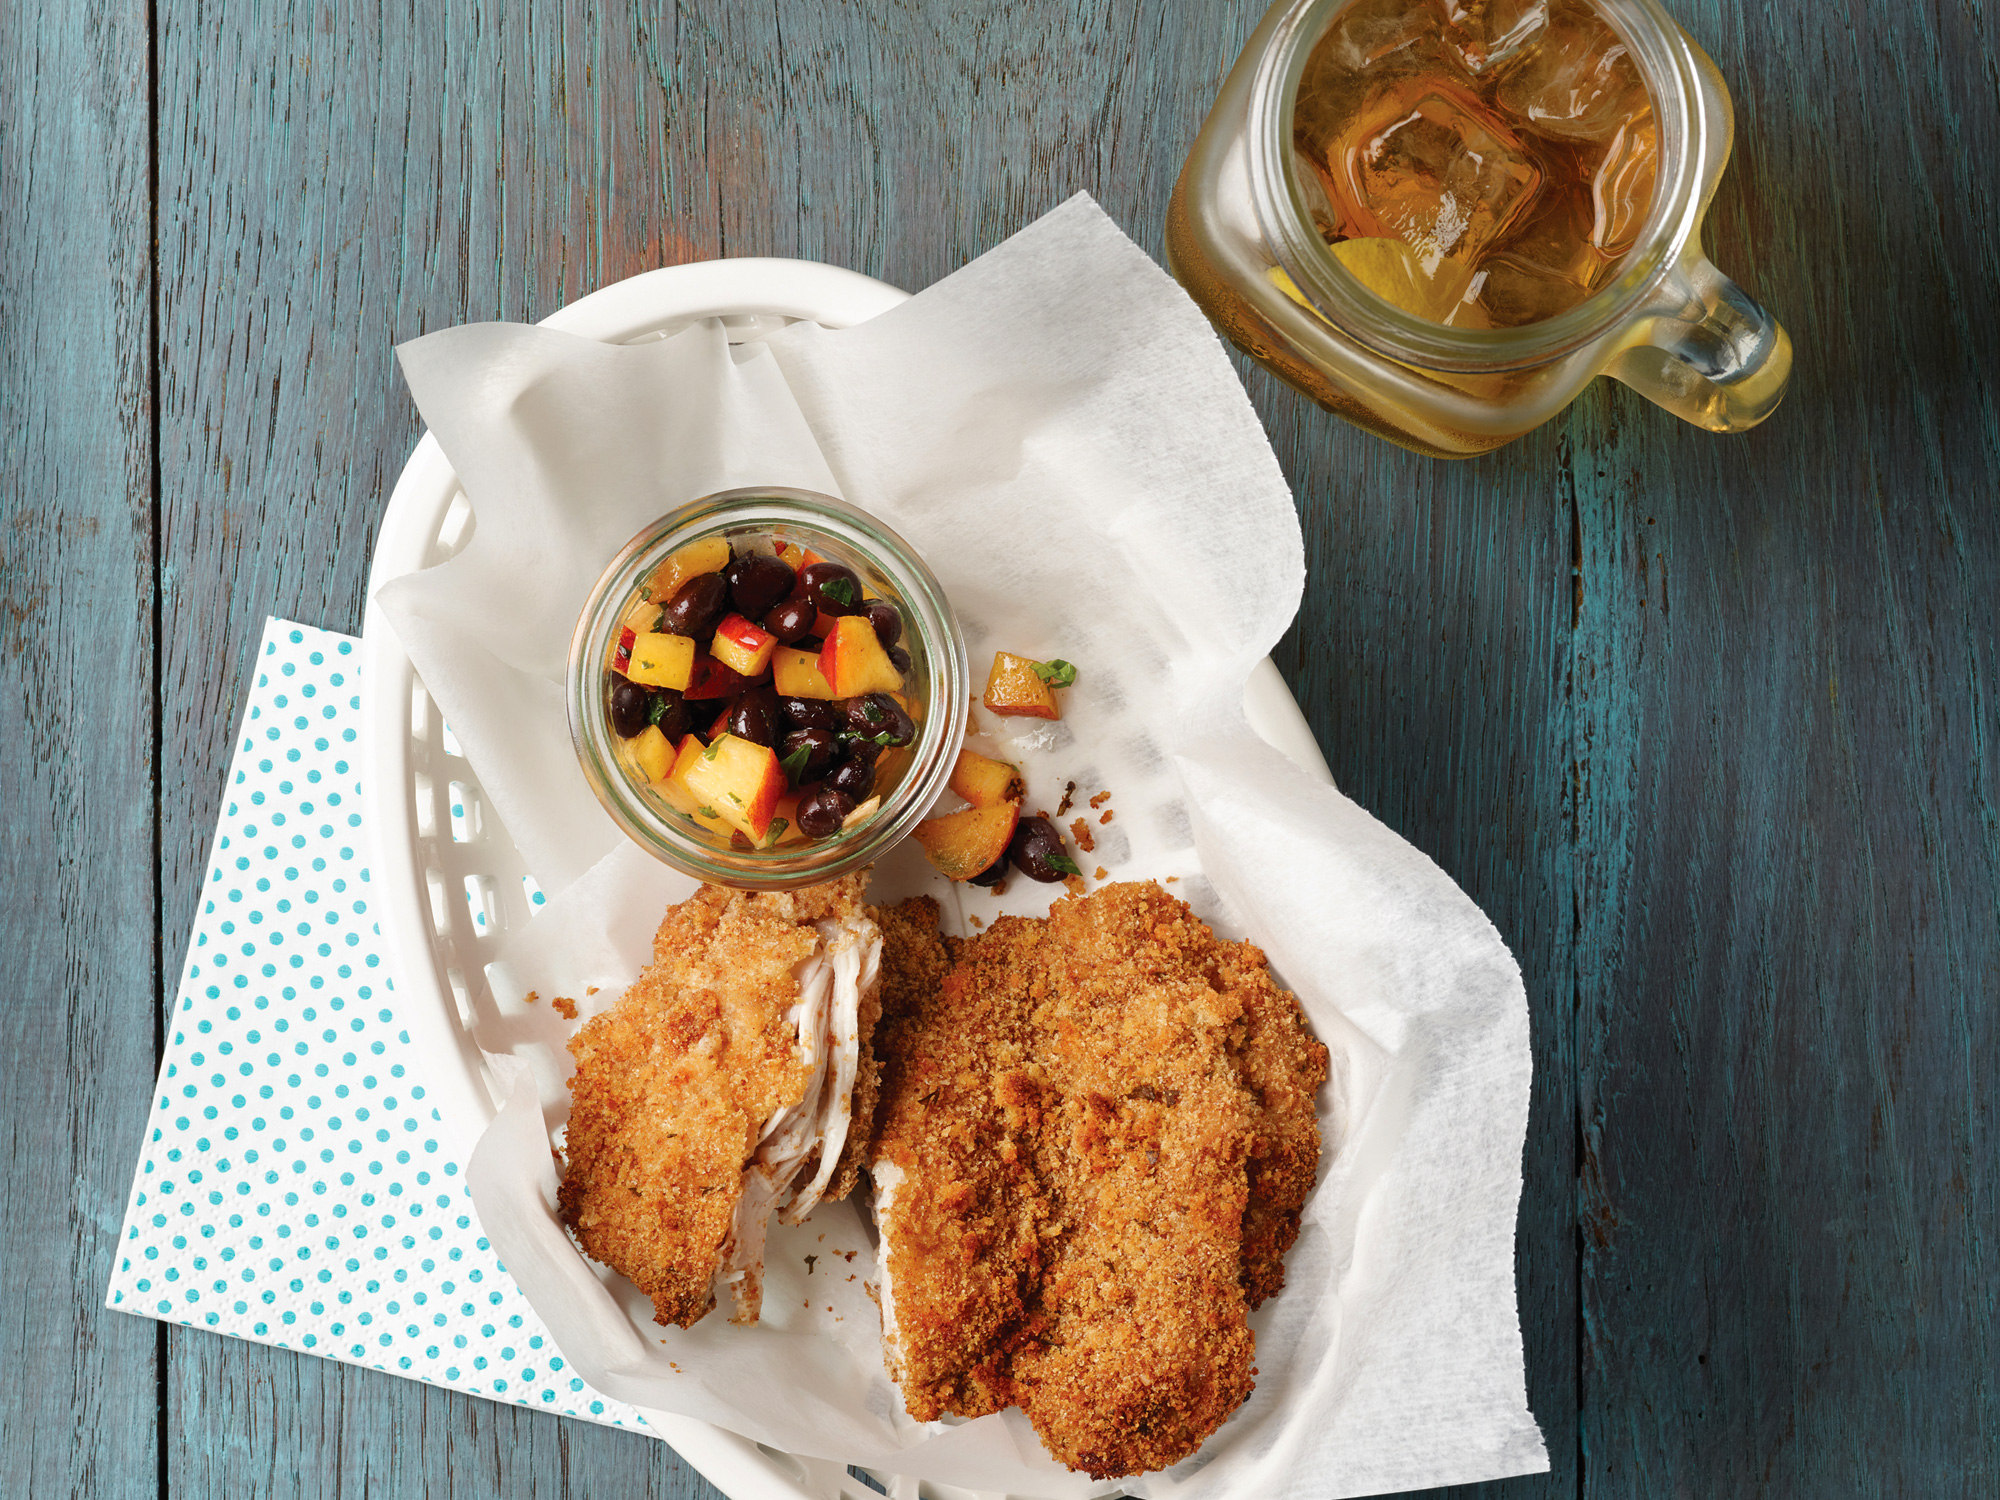 Easy diabetic-friendly fried chicken is baked in the oven.